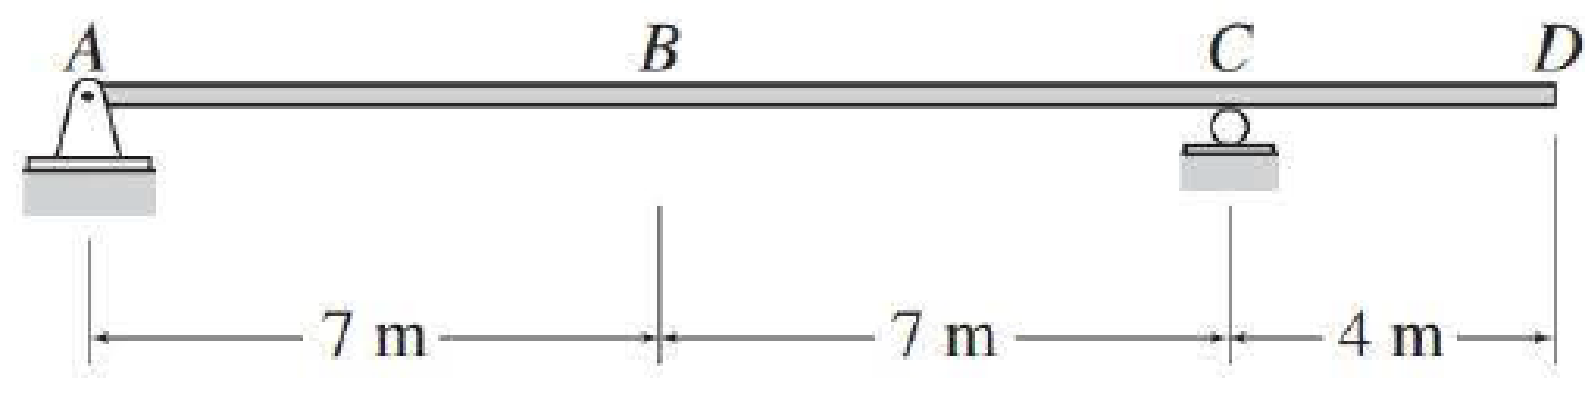 Chapter 8, Problem 6P, Draw the influence lines for the vertical reactions at support A and C and the shear and bending